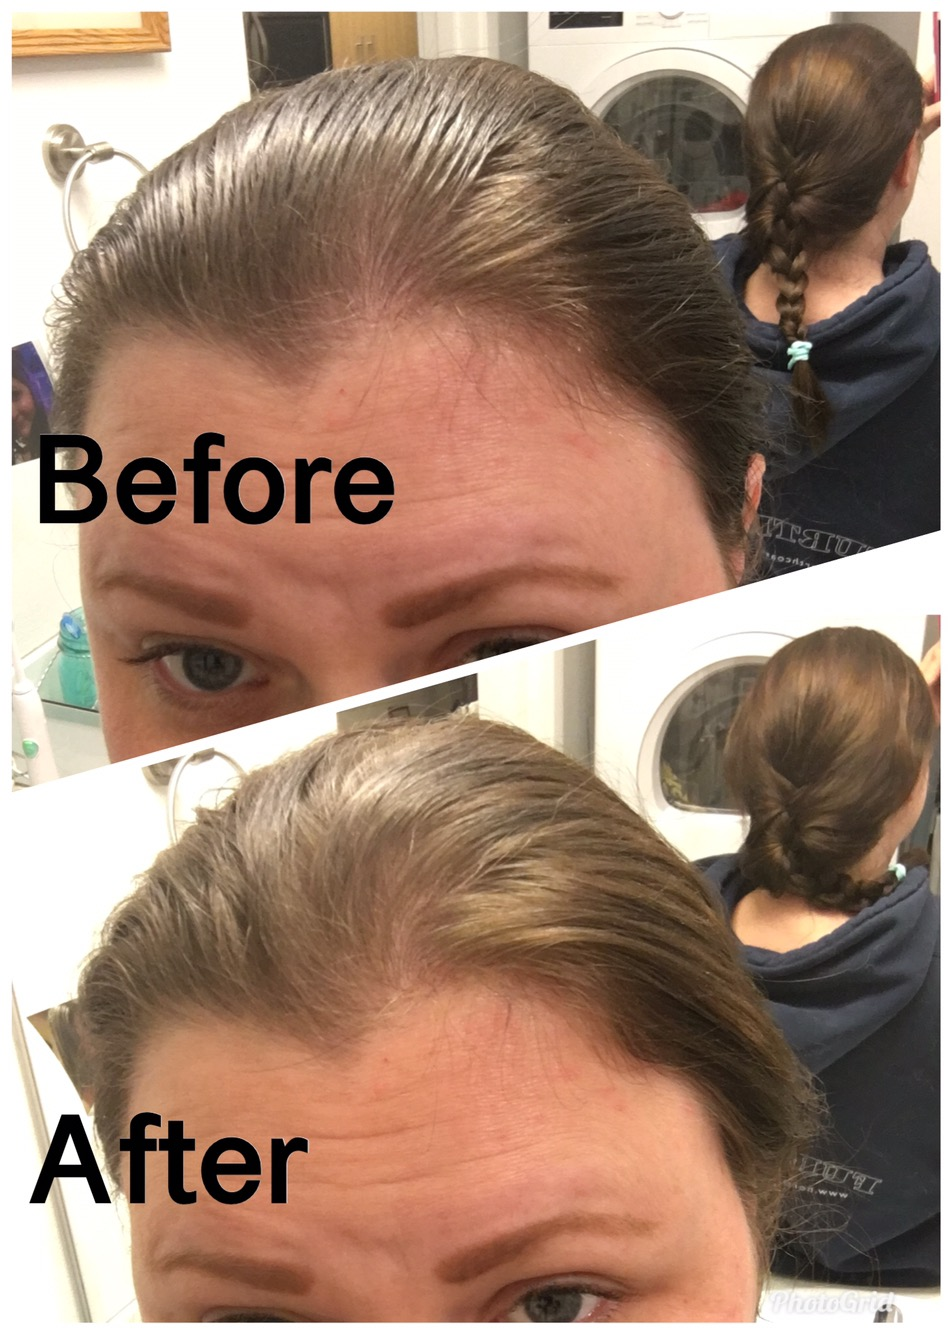 hair before and after dry shampoo